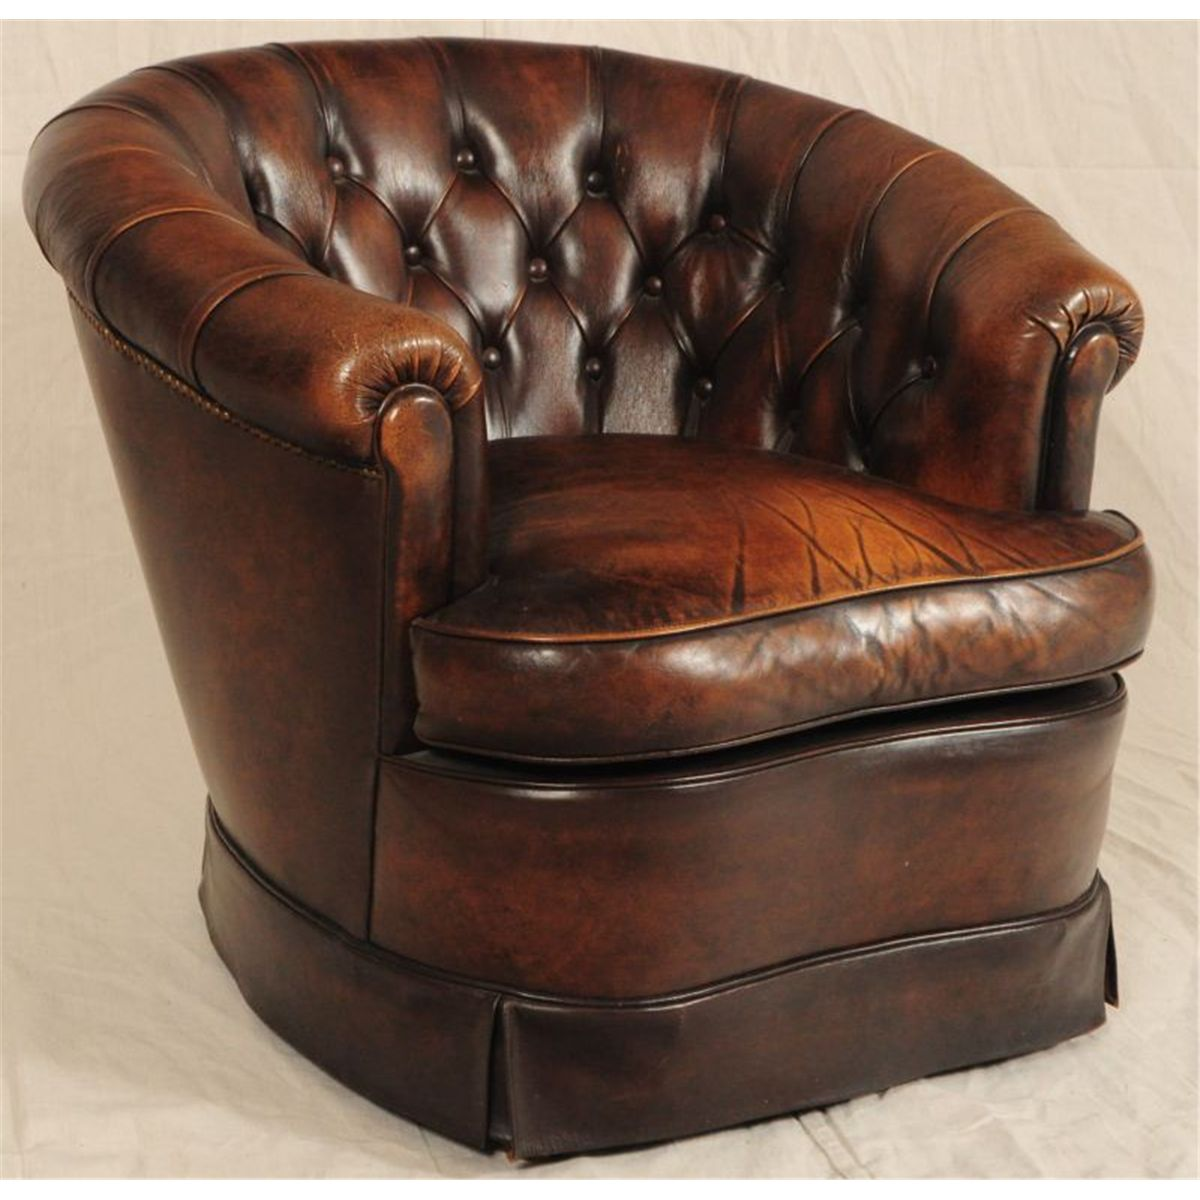 Ordinaire ... Image 3 : Button Back Leather Sofa U0026 Matching Club Chairs ...